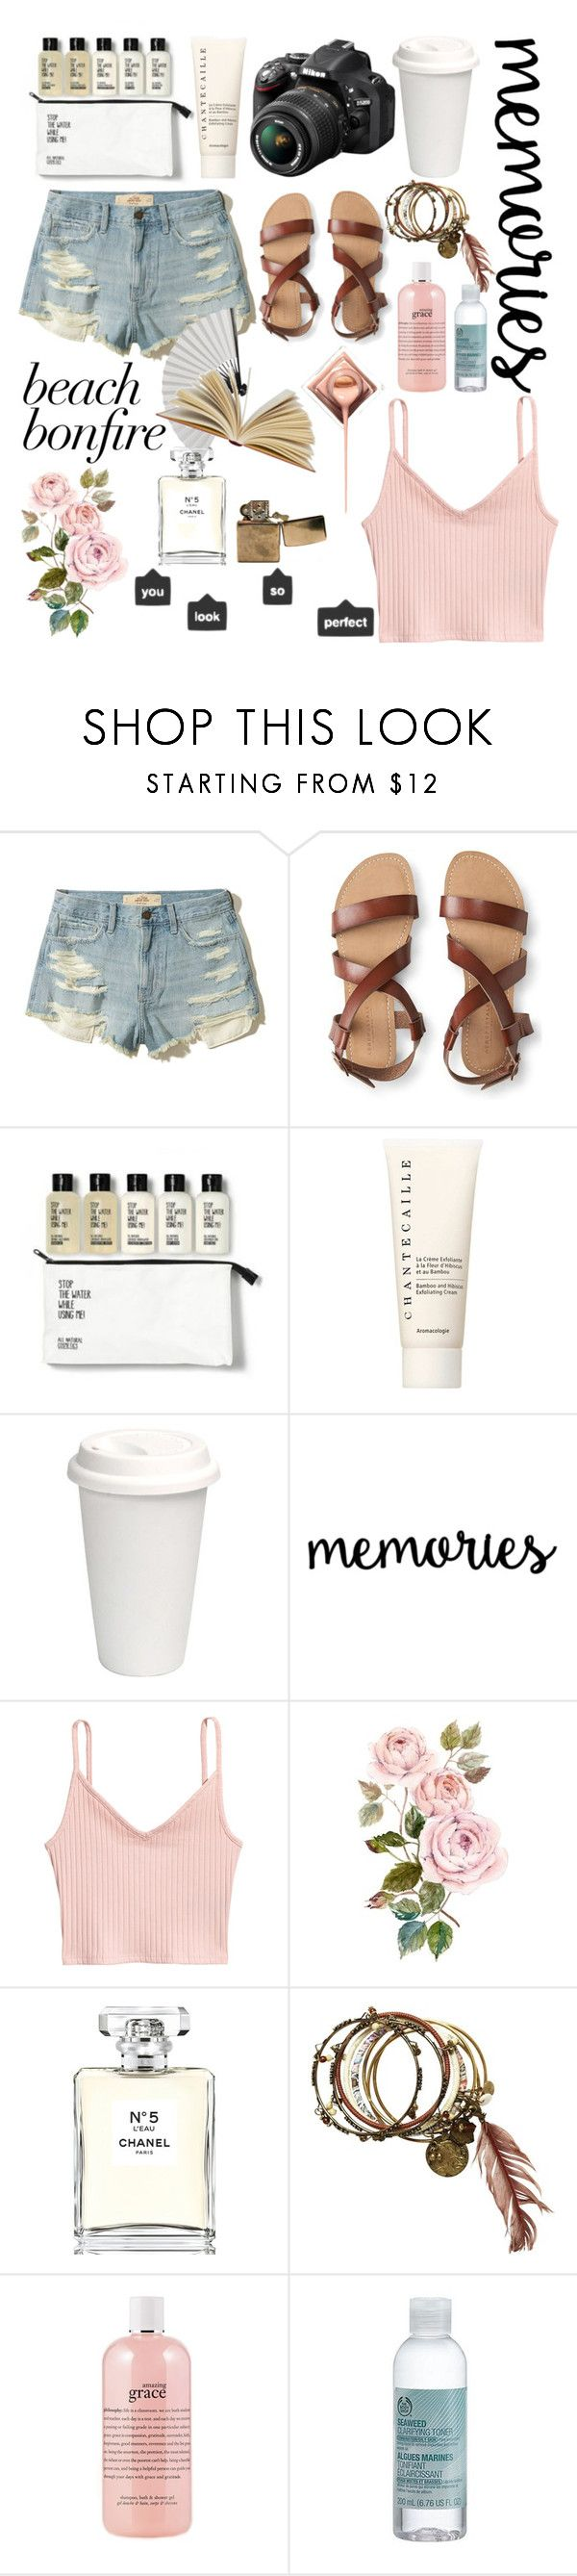 """""""Untitled #963"""" by helenaki65 ❤ liked on Polyvore featuring Hollister Co., Aéropostale, Chantecaille, Nikon, Chanel, philosophy and The Body Shop"""